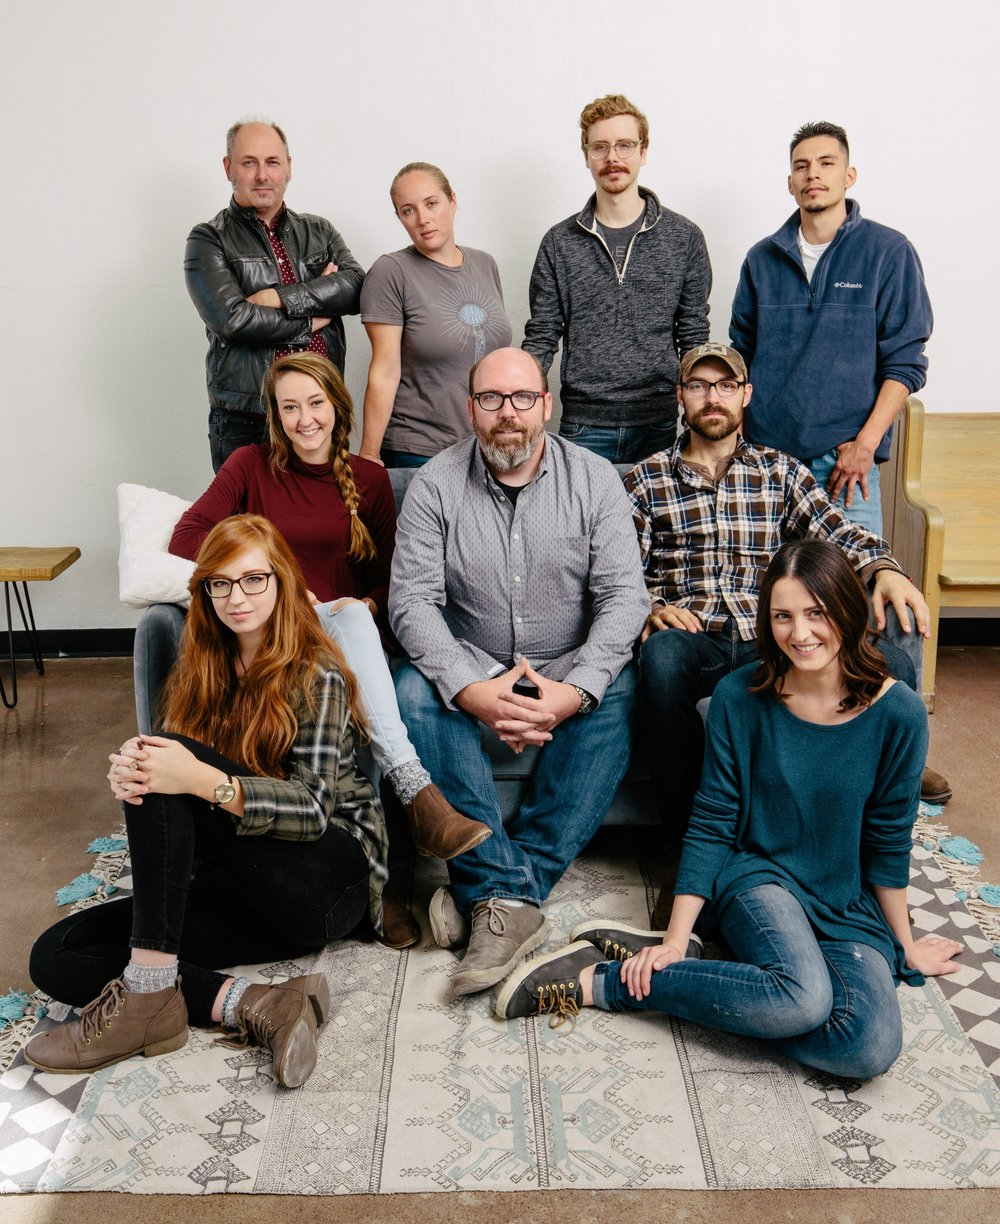 Andrew Gough often contributes Reverie's success to his talented and dedicated staff. Reverie is, front row, from left: Rebecca Prochaska, Kaitlyn Wall. Middle: Katie Maher, Andrew Gough, Chris Wells. Back: Jason Hendry, Stephanie Hand, Tom Murillo, Oscar Pineda.